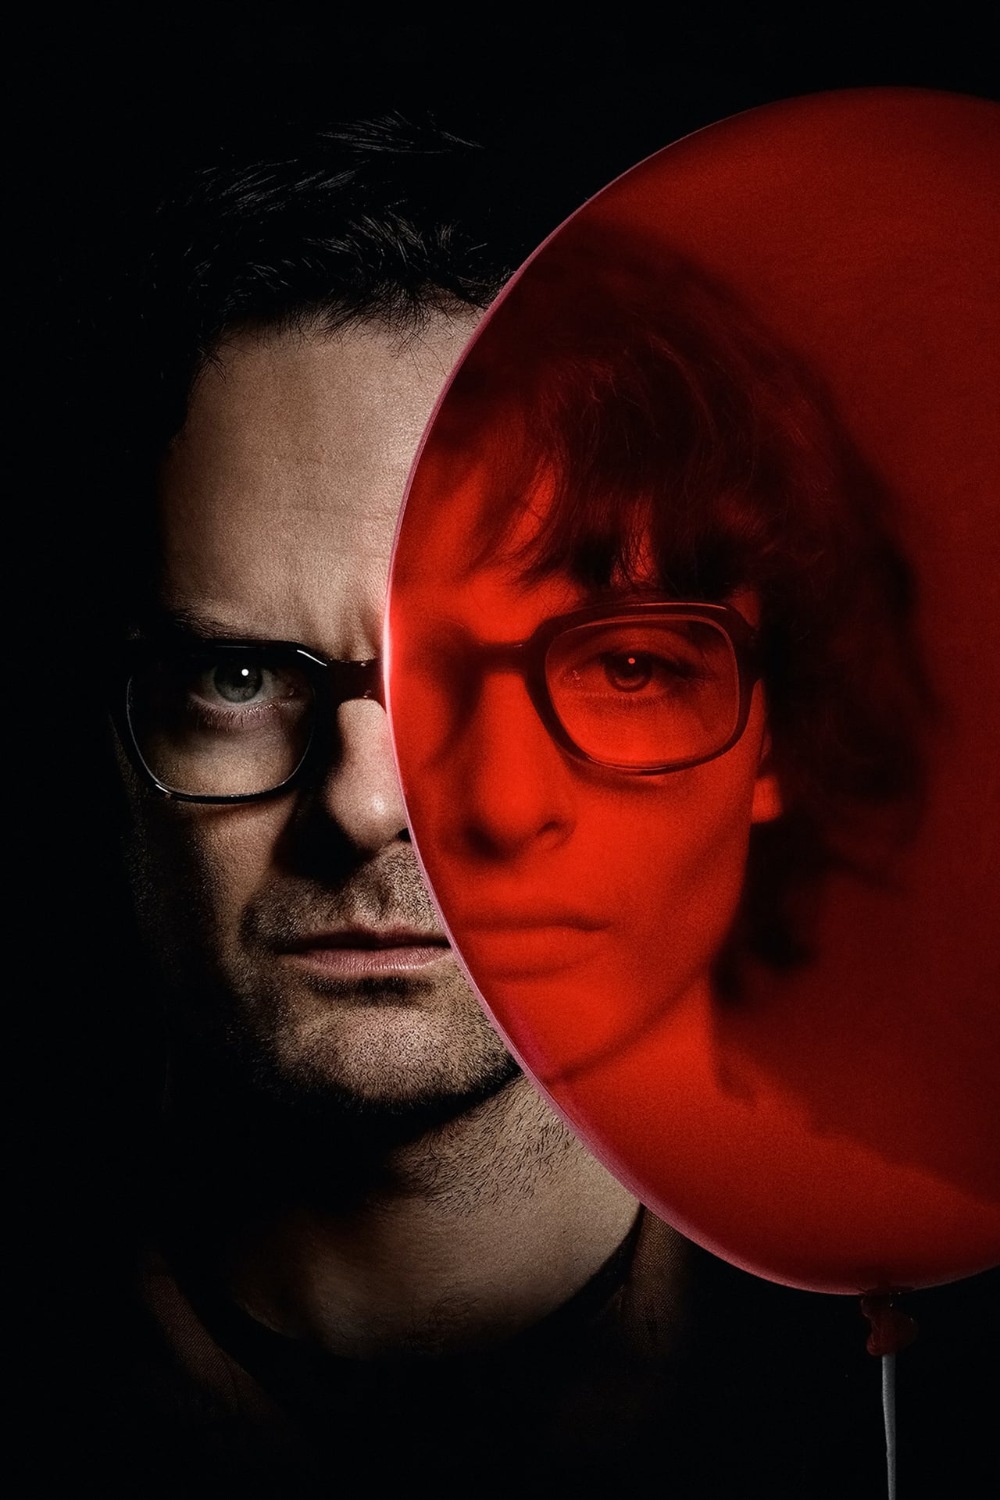 *Watch It Chapter Two [2019] Gratis - James McAvoy, Jessica Chastain, Bill Hader - 27 years after overcoming the malevolent supernatural entity Pennywise, the former members of the Losers' Club, who have grown up and moved away from Derry, are brought back together by a devastating  ...It Chapter Two,It Chapter Two Cast,It Chapter Two Google Docs,It Chapter Two Showing Times,It Chapter Two Trailer,It Chapter Two Review,It Chapter Two Full Movie,It Chapter Two Movie Times,It Chapter Two Showtimes